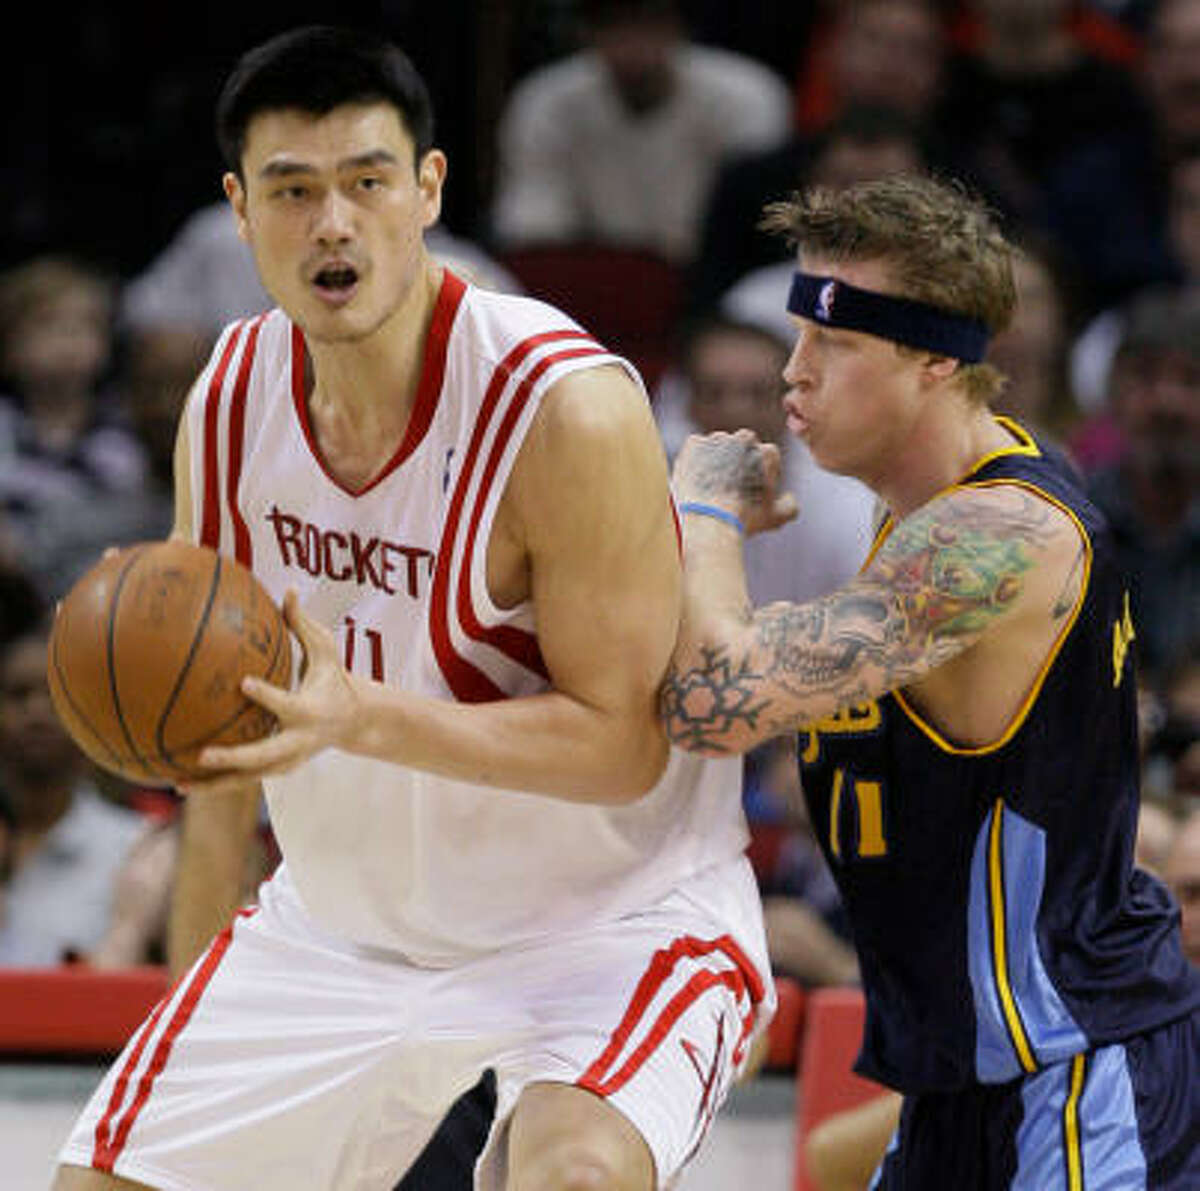 Yao Ming, who scored a game-high 31 points, battles Denver forward Chris Anderson, right, for position in the second half.